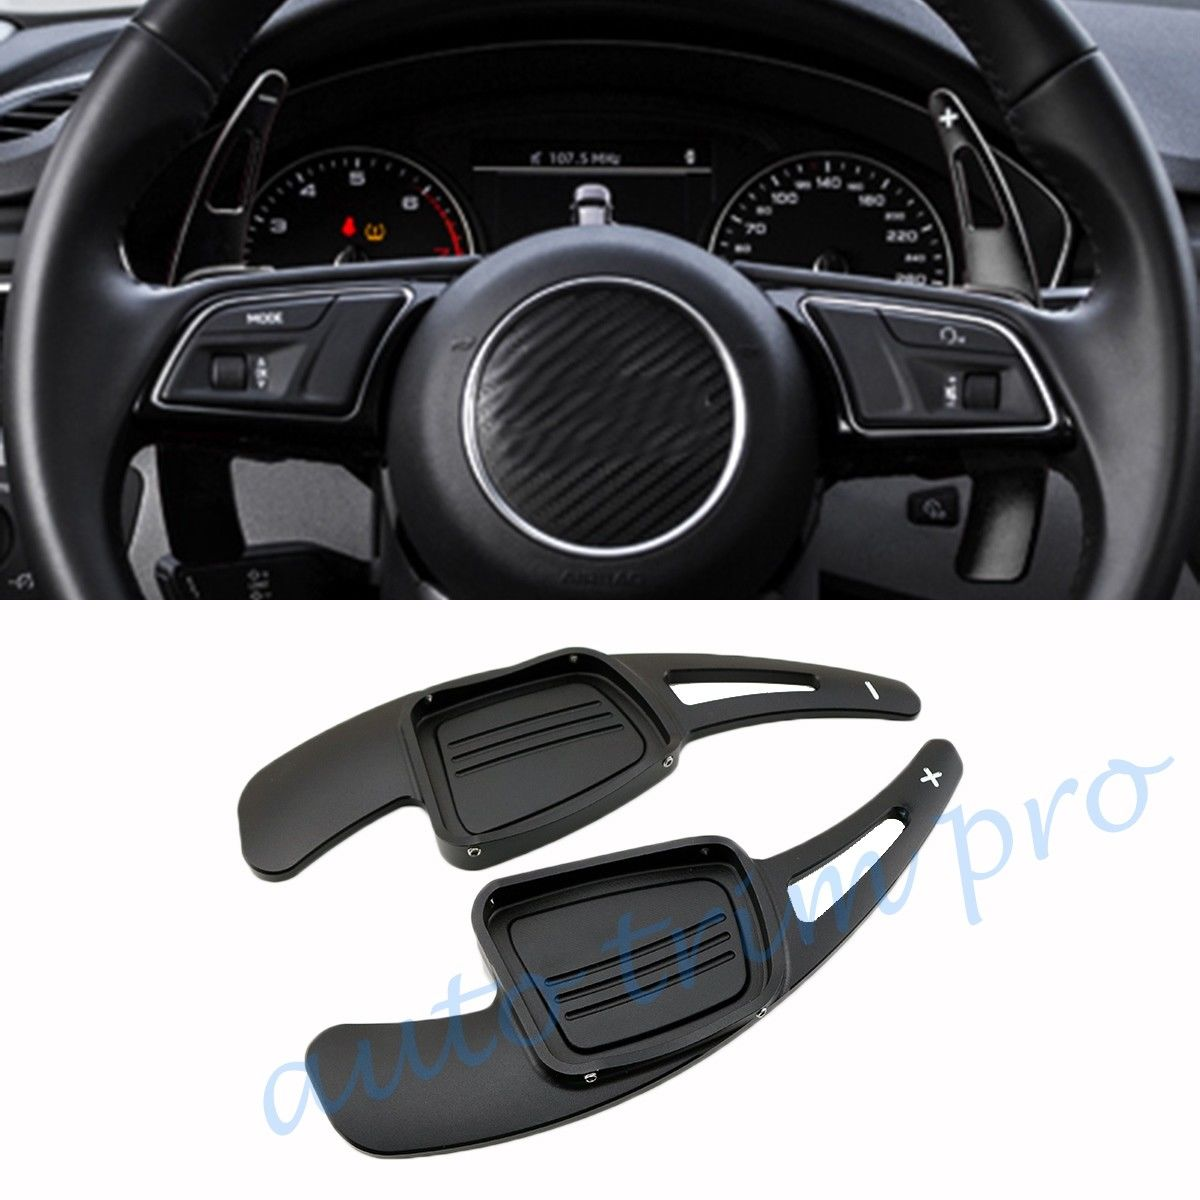 DSG Steering Wheel Shift Level Paddle Shifter Extension For Audi A3 A4L A5 S3 S4 Q2